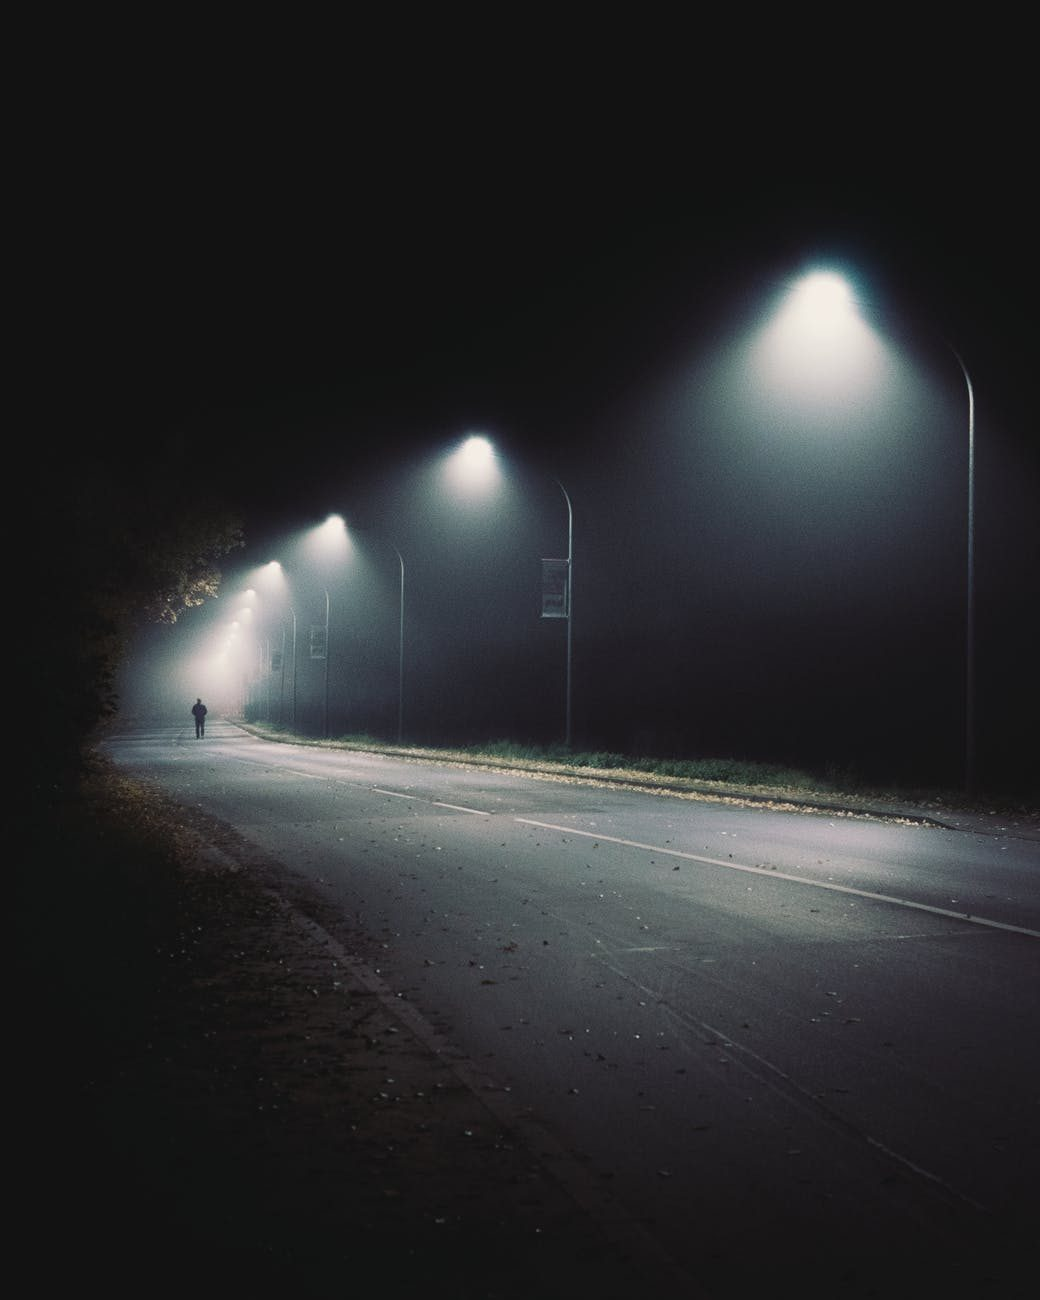 wide road with street lights